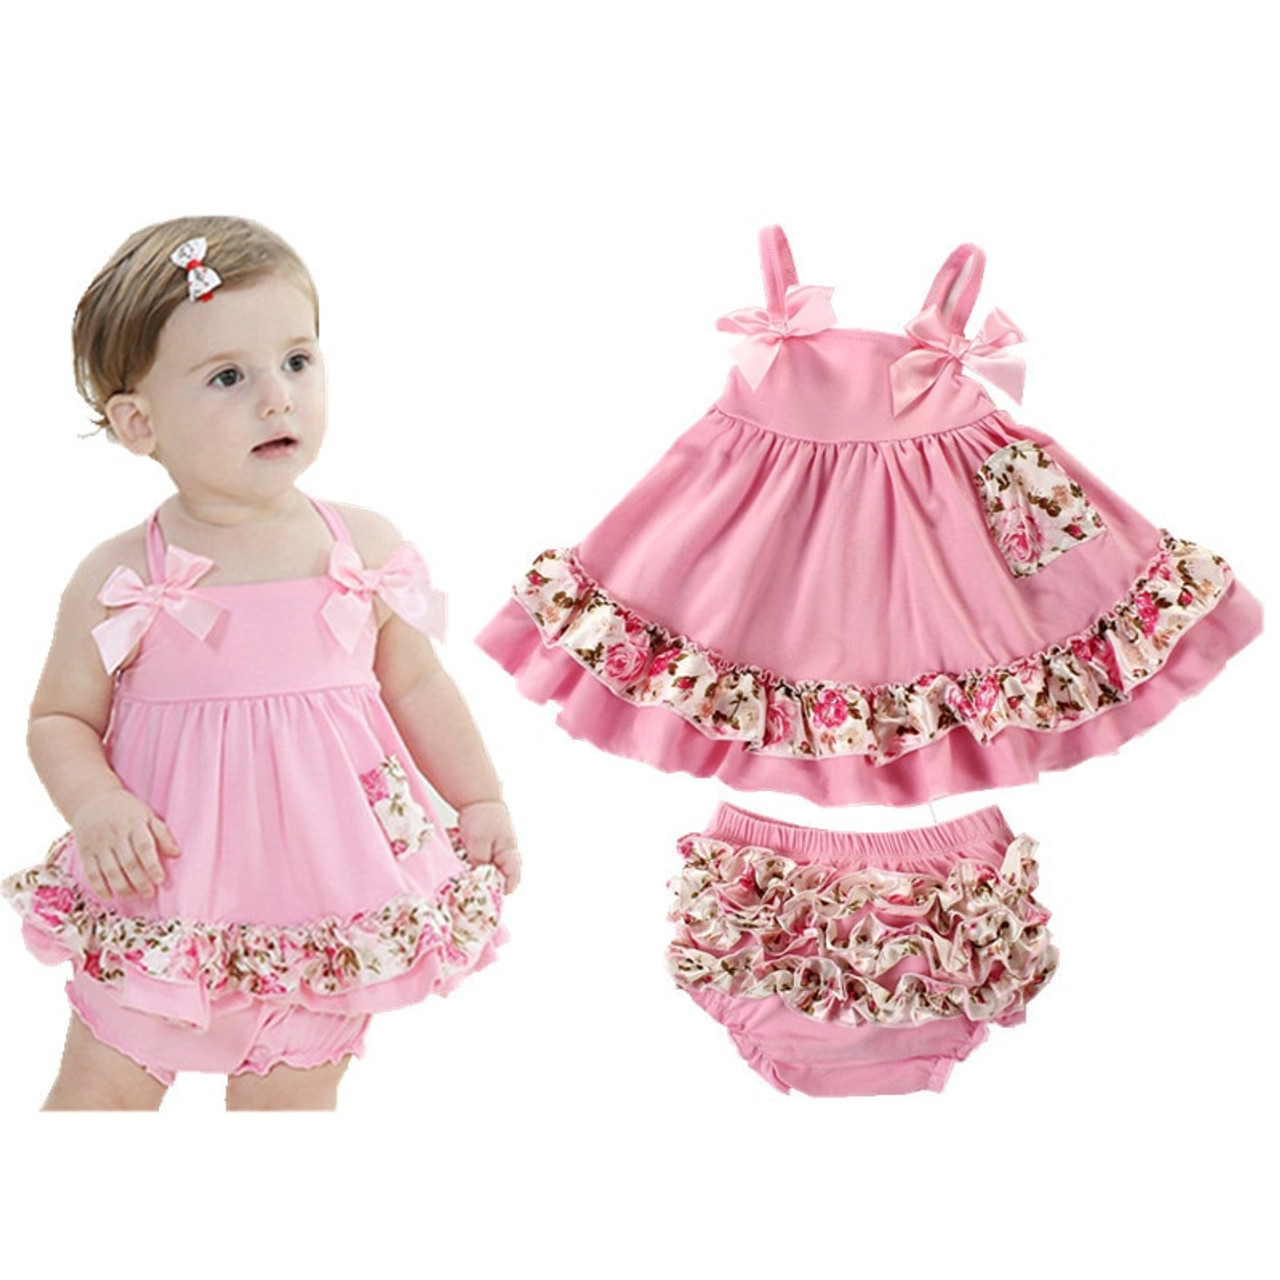 Newborn baby girl clothes pictures